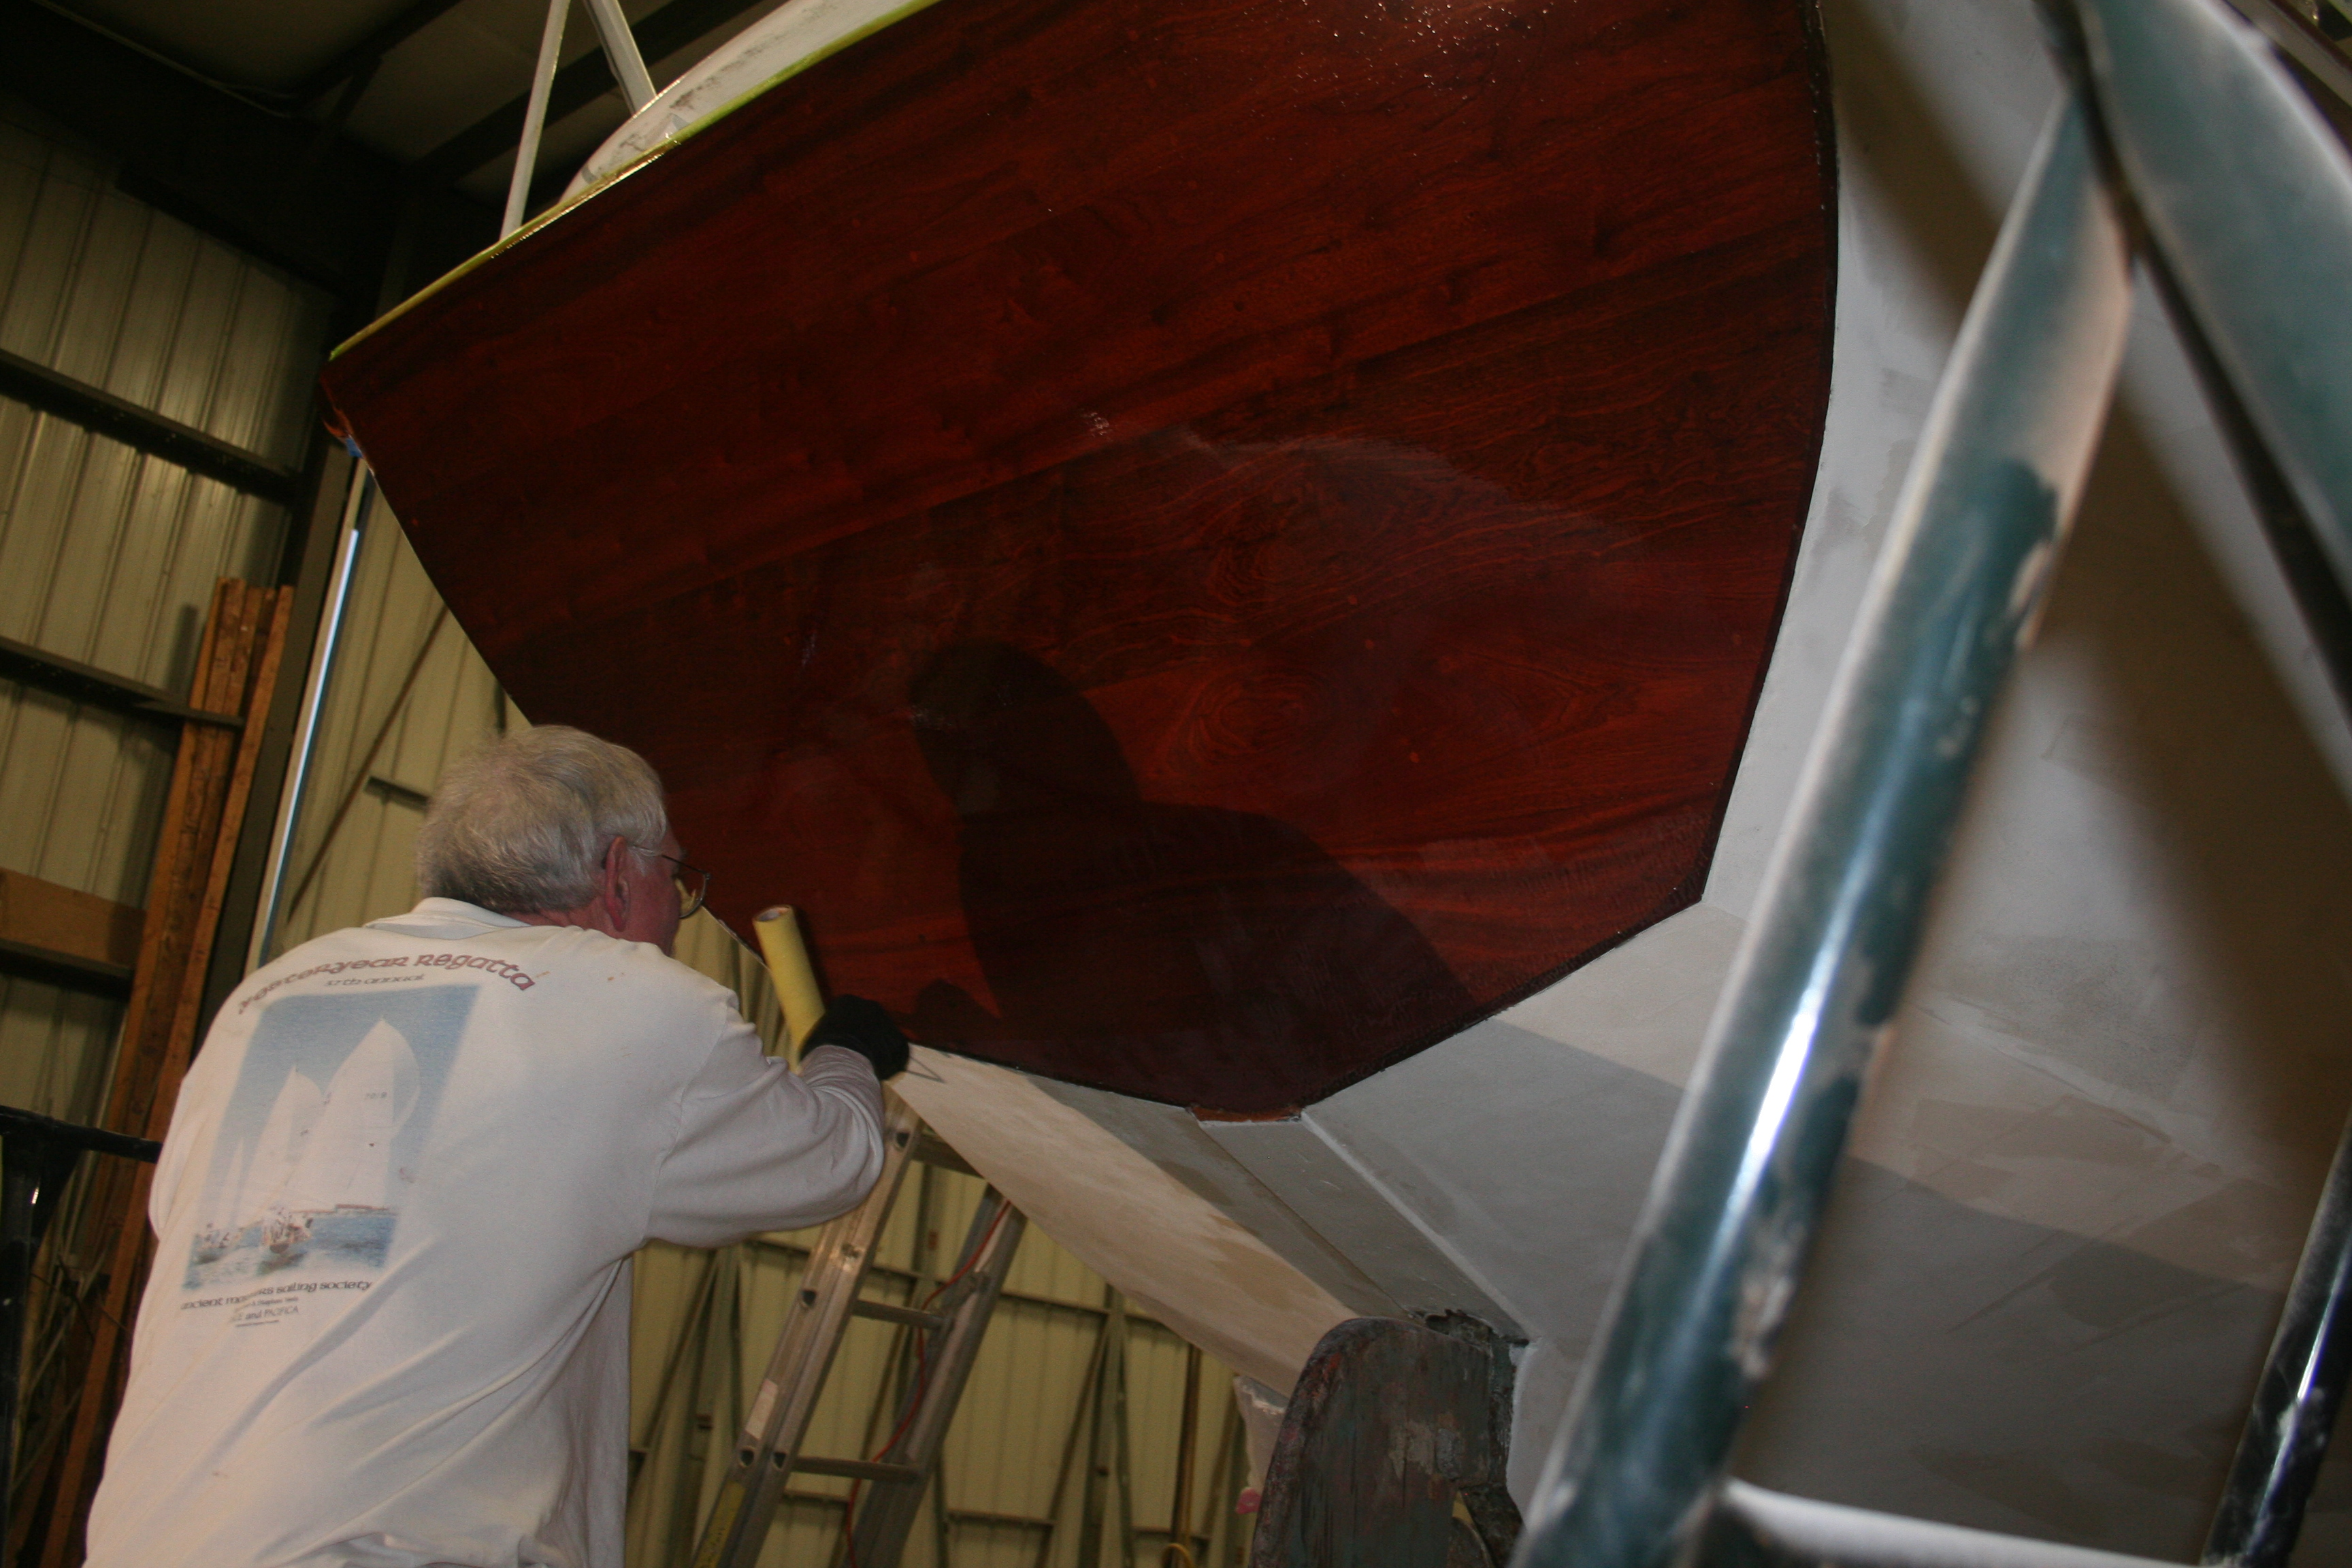 Maid of Kent_34_stern epoxy